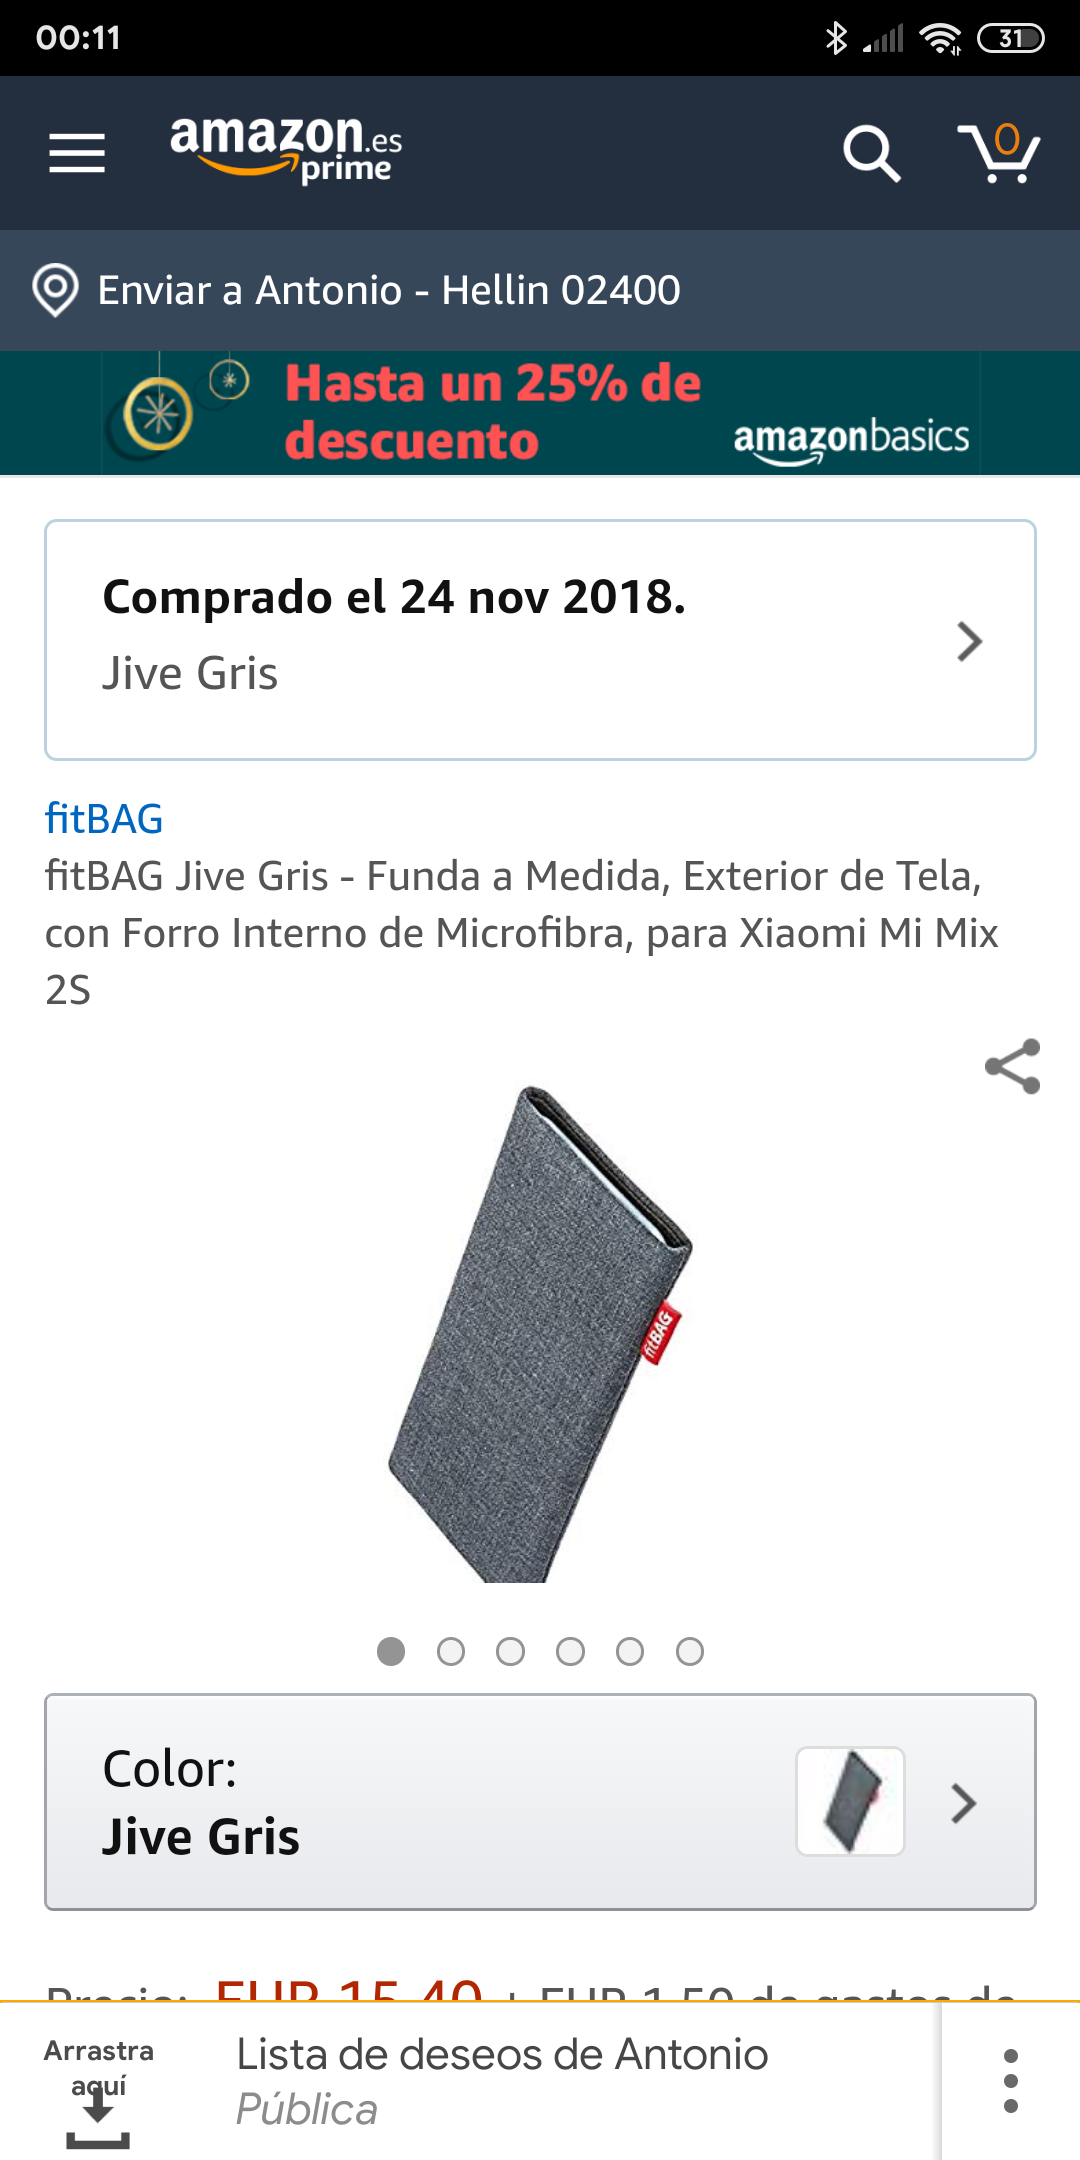 Screenshot_2018-12-22-00-11-29-496_com.amazon.mShop.android.shopping.png